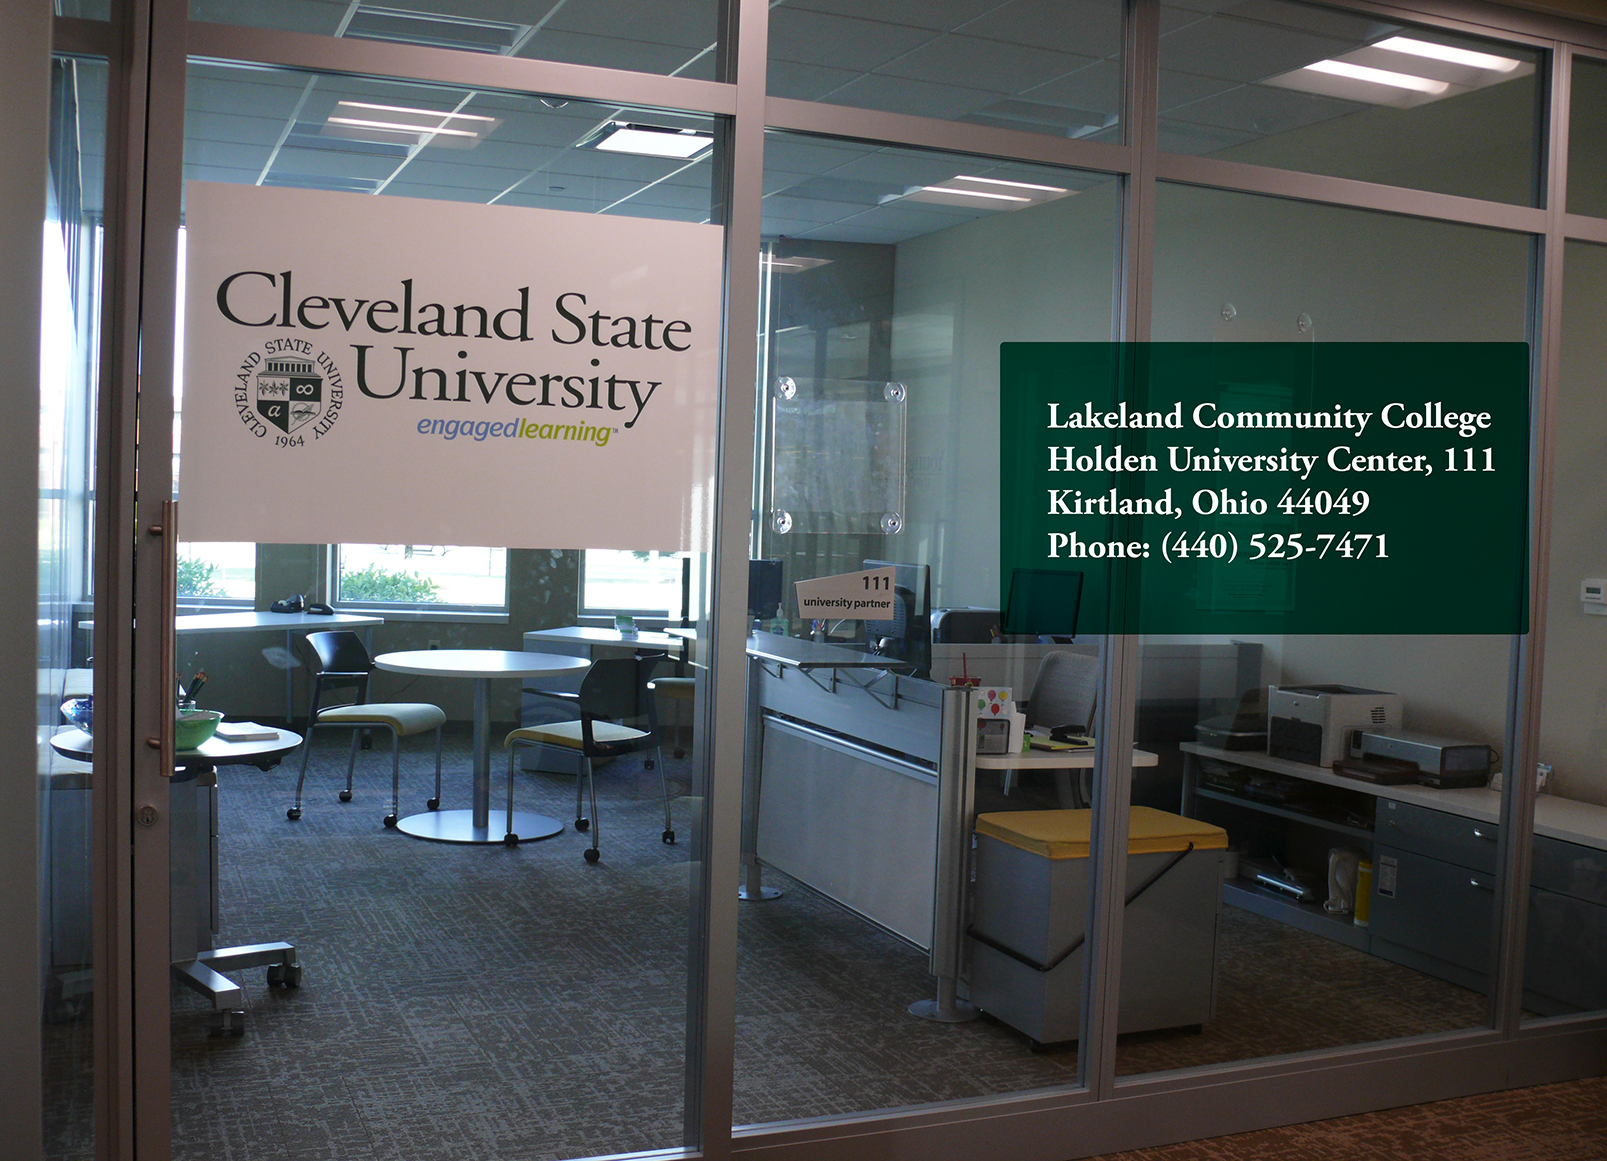 The Partnership office is at the Lakeland Community College Holden University Center, 111 Kirtland, OH 44094  Phone: (440) 525-7471